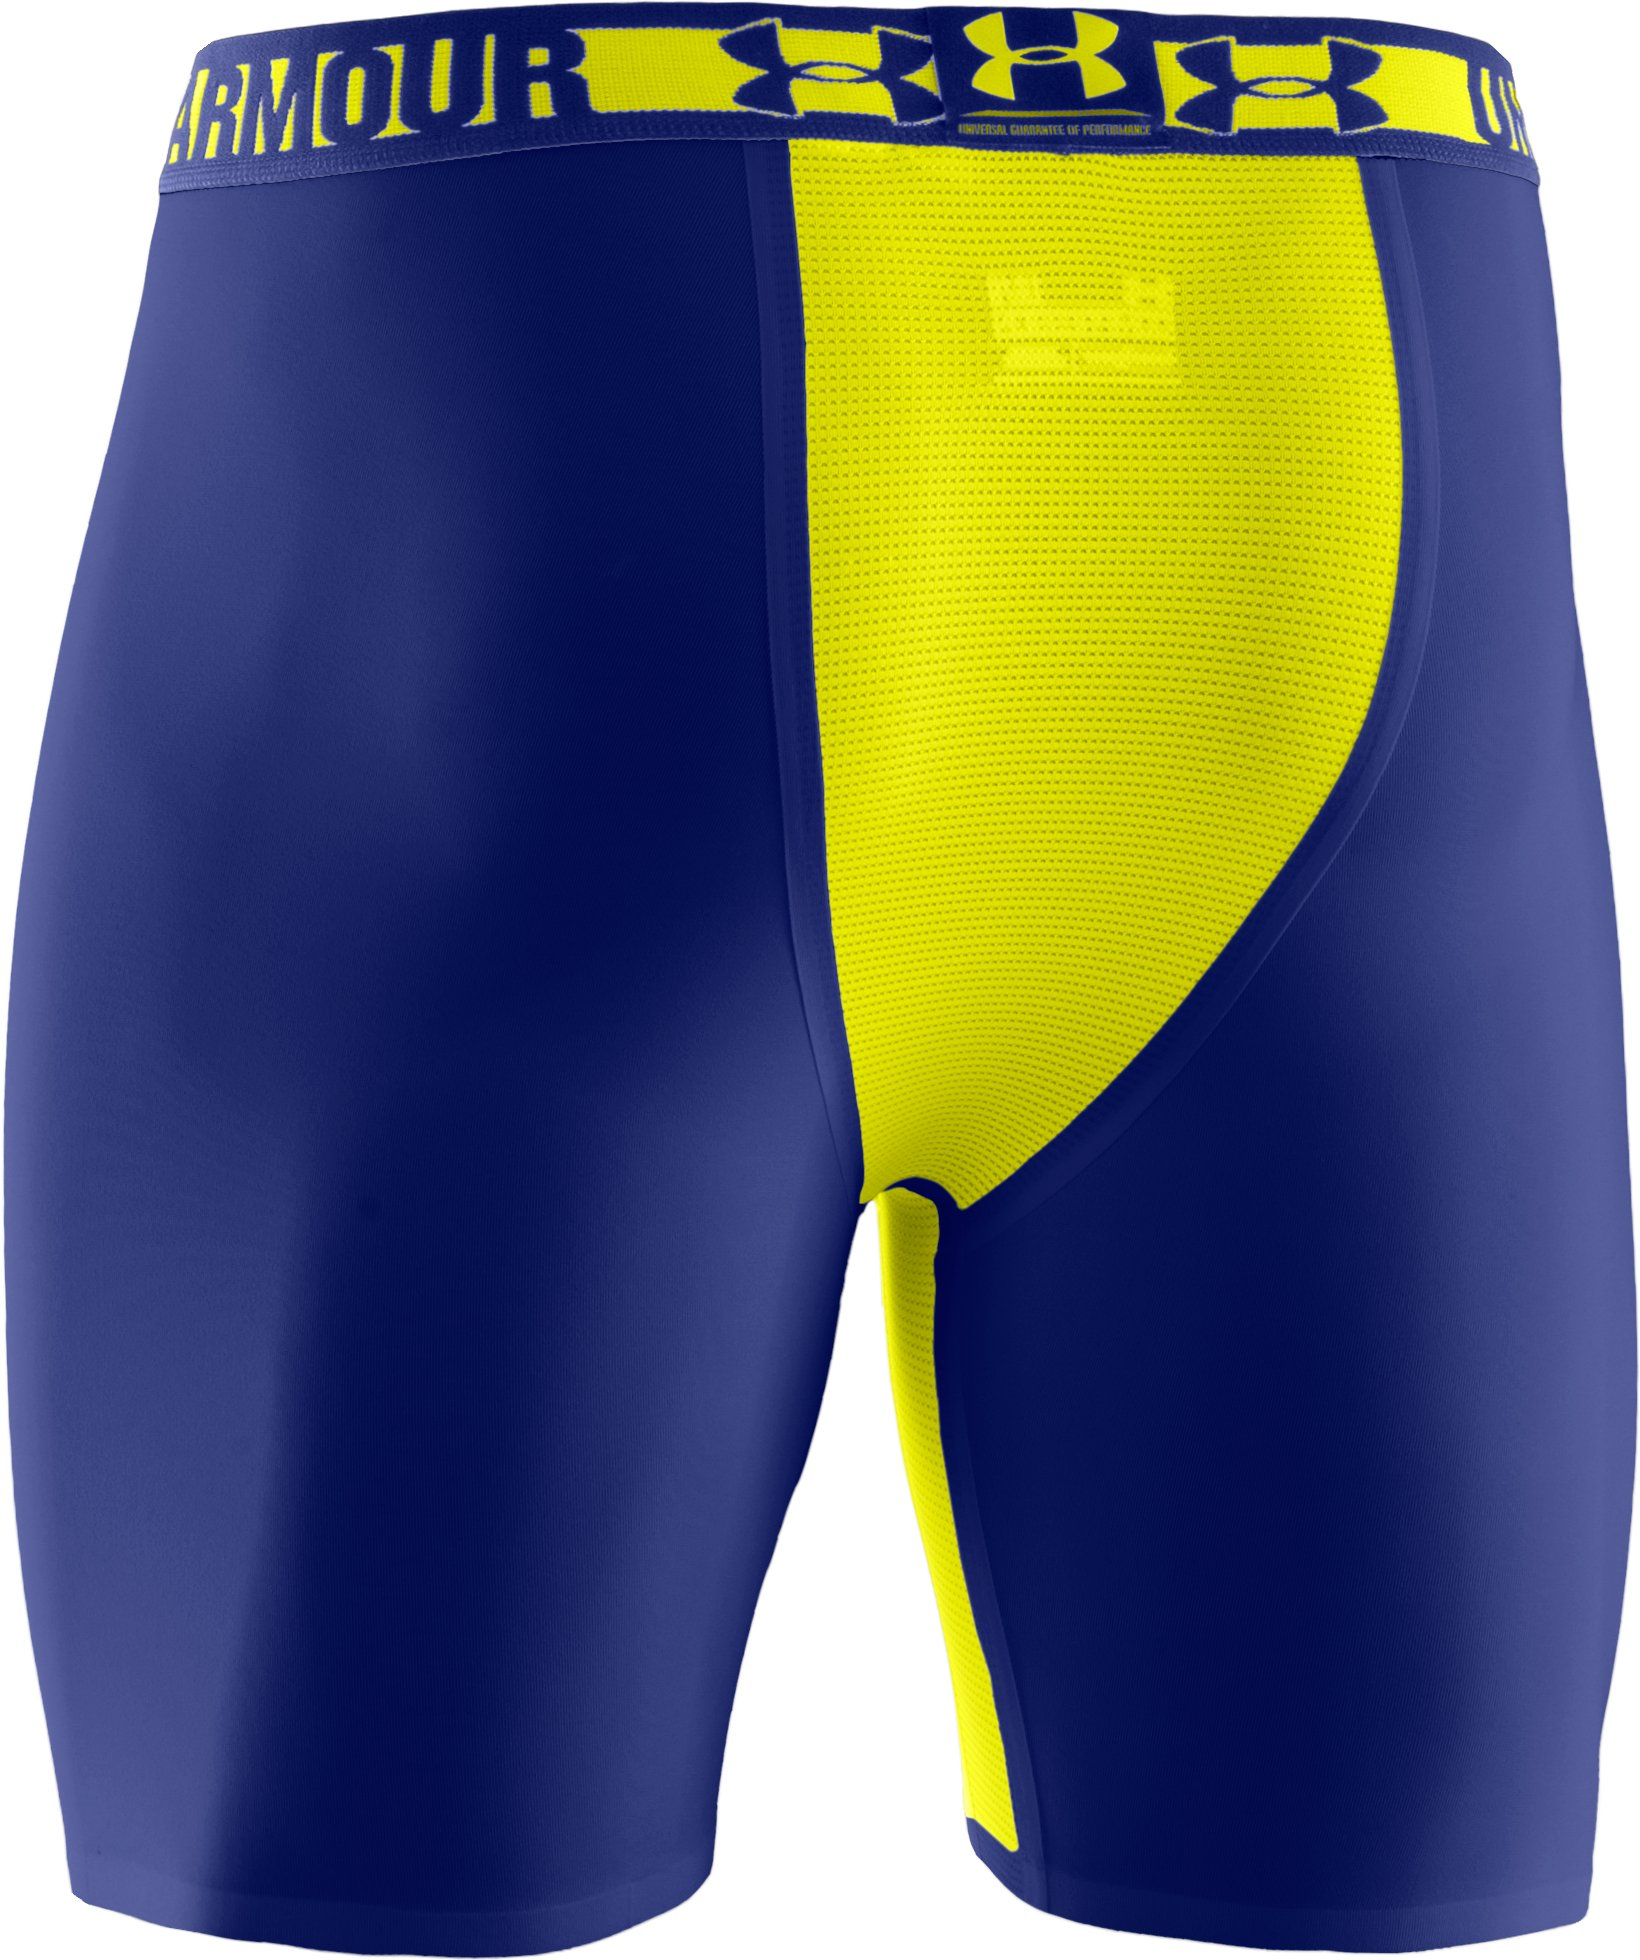 "Men's HeatGear® Dynasty Vented 6"" Compression Shorts, Royal,"